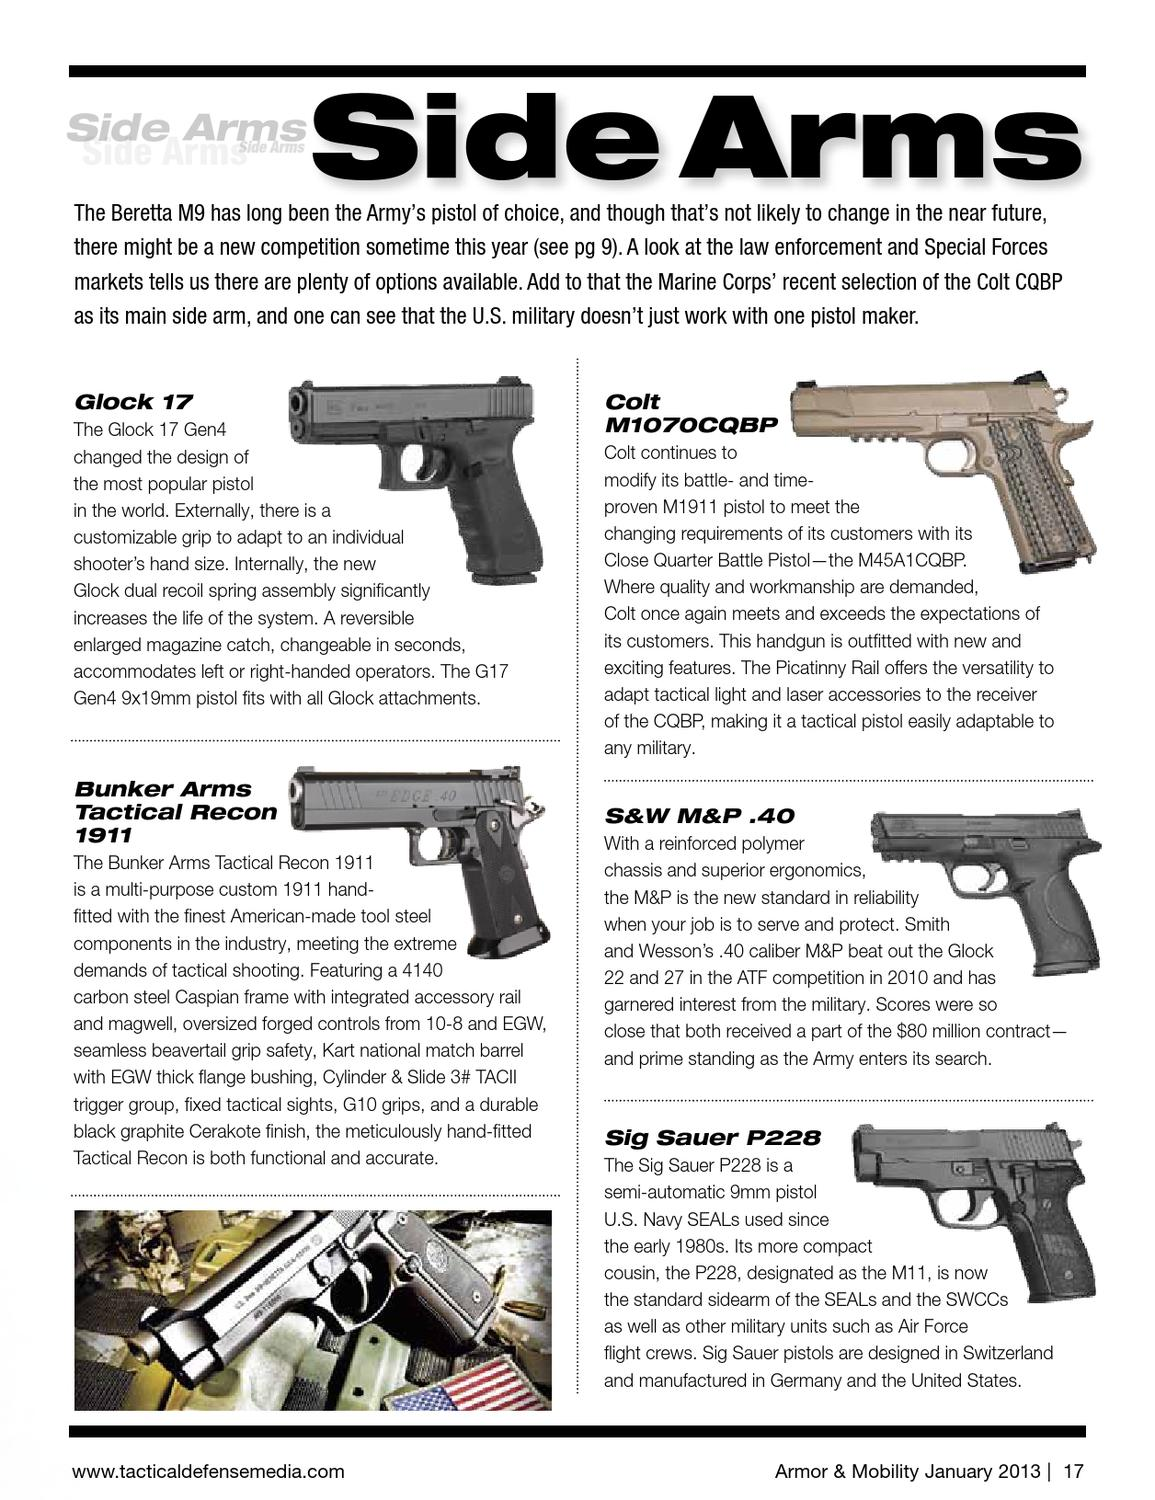 Armor & Mobility, January 2013 by Tactical Defense Media - issuu